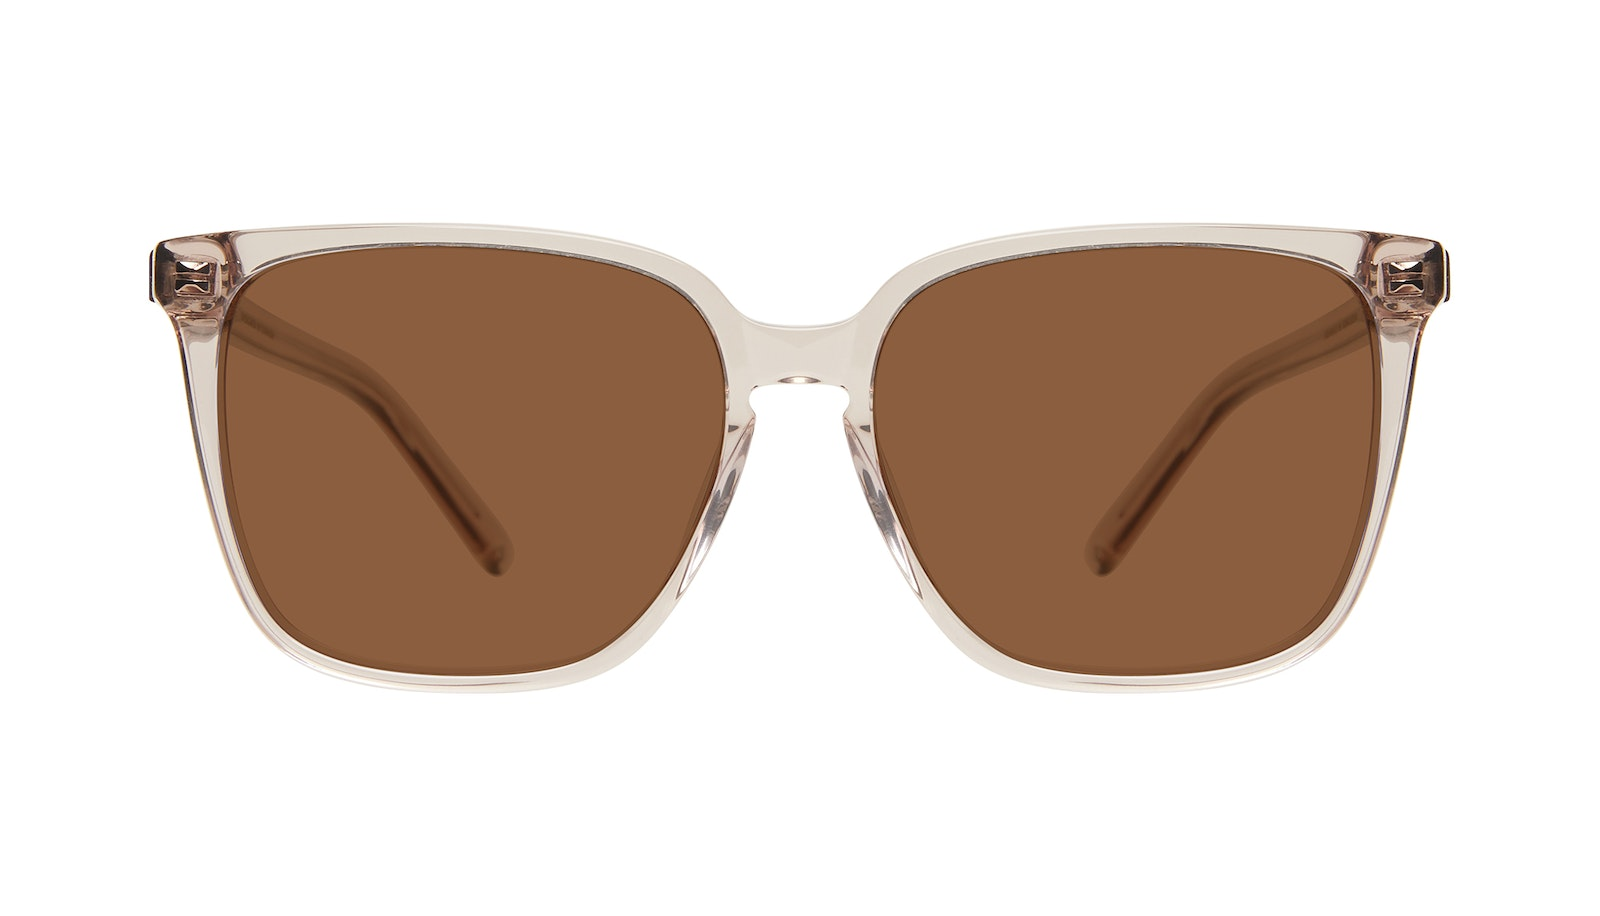 Affordable Fashion Glasses Square Sunglasses Women Runway Sand